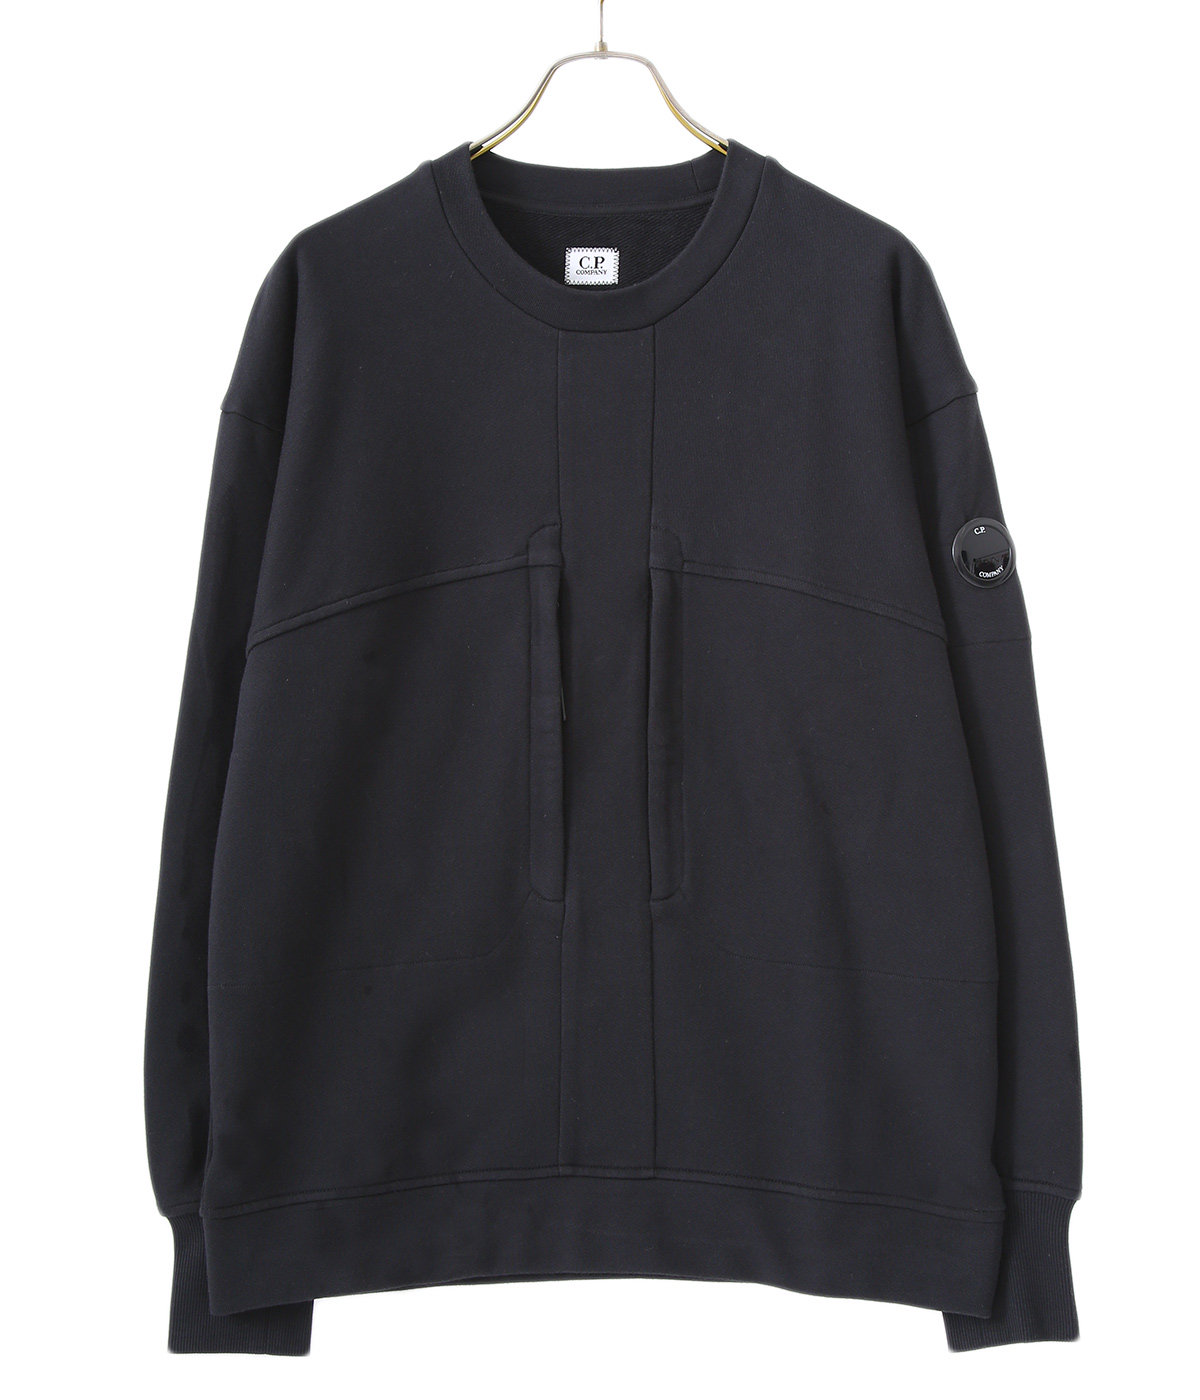 SWEATSHIRTS - CREW NECK